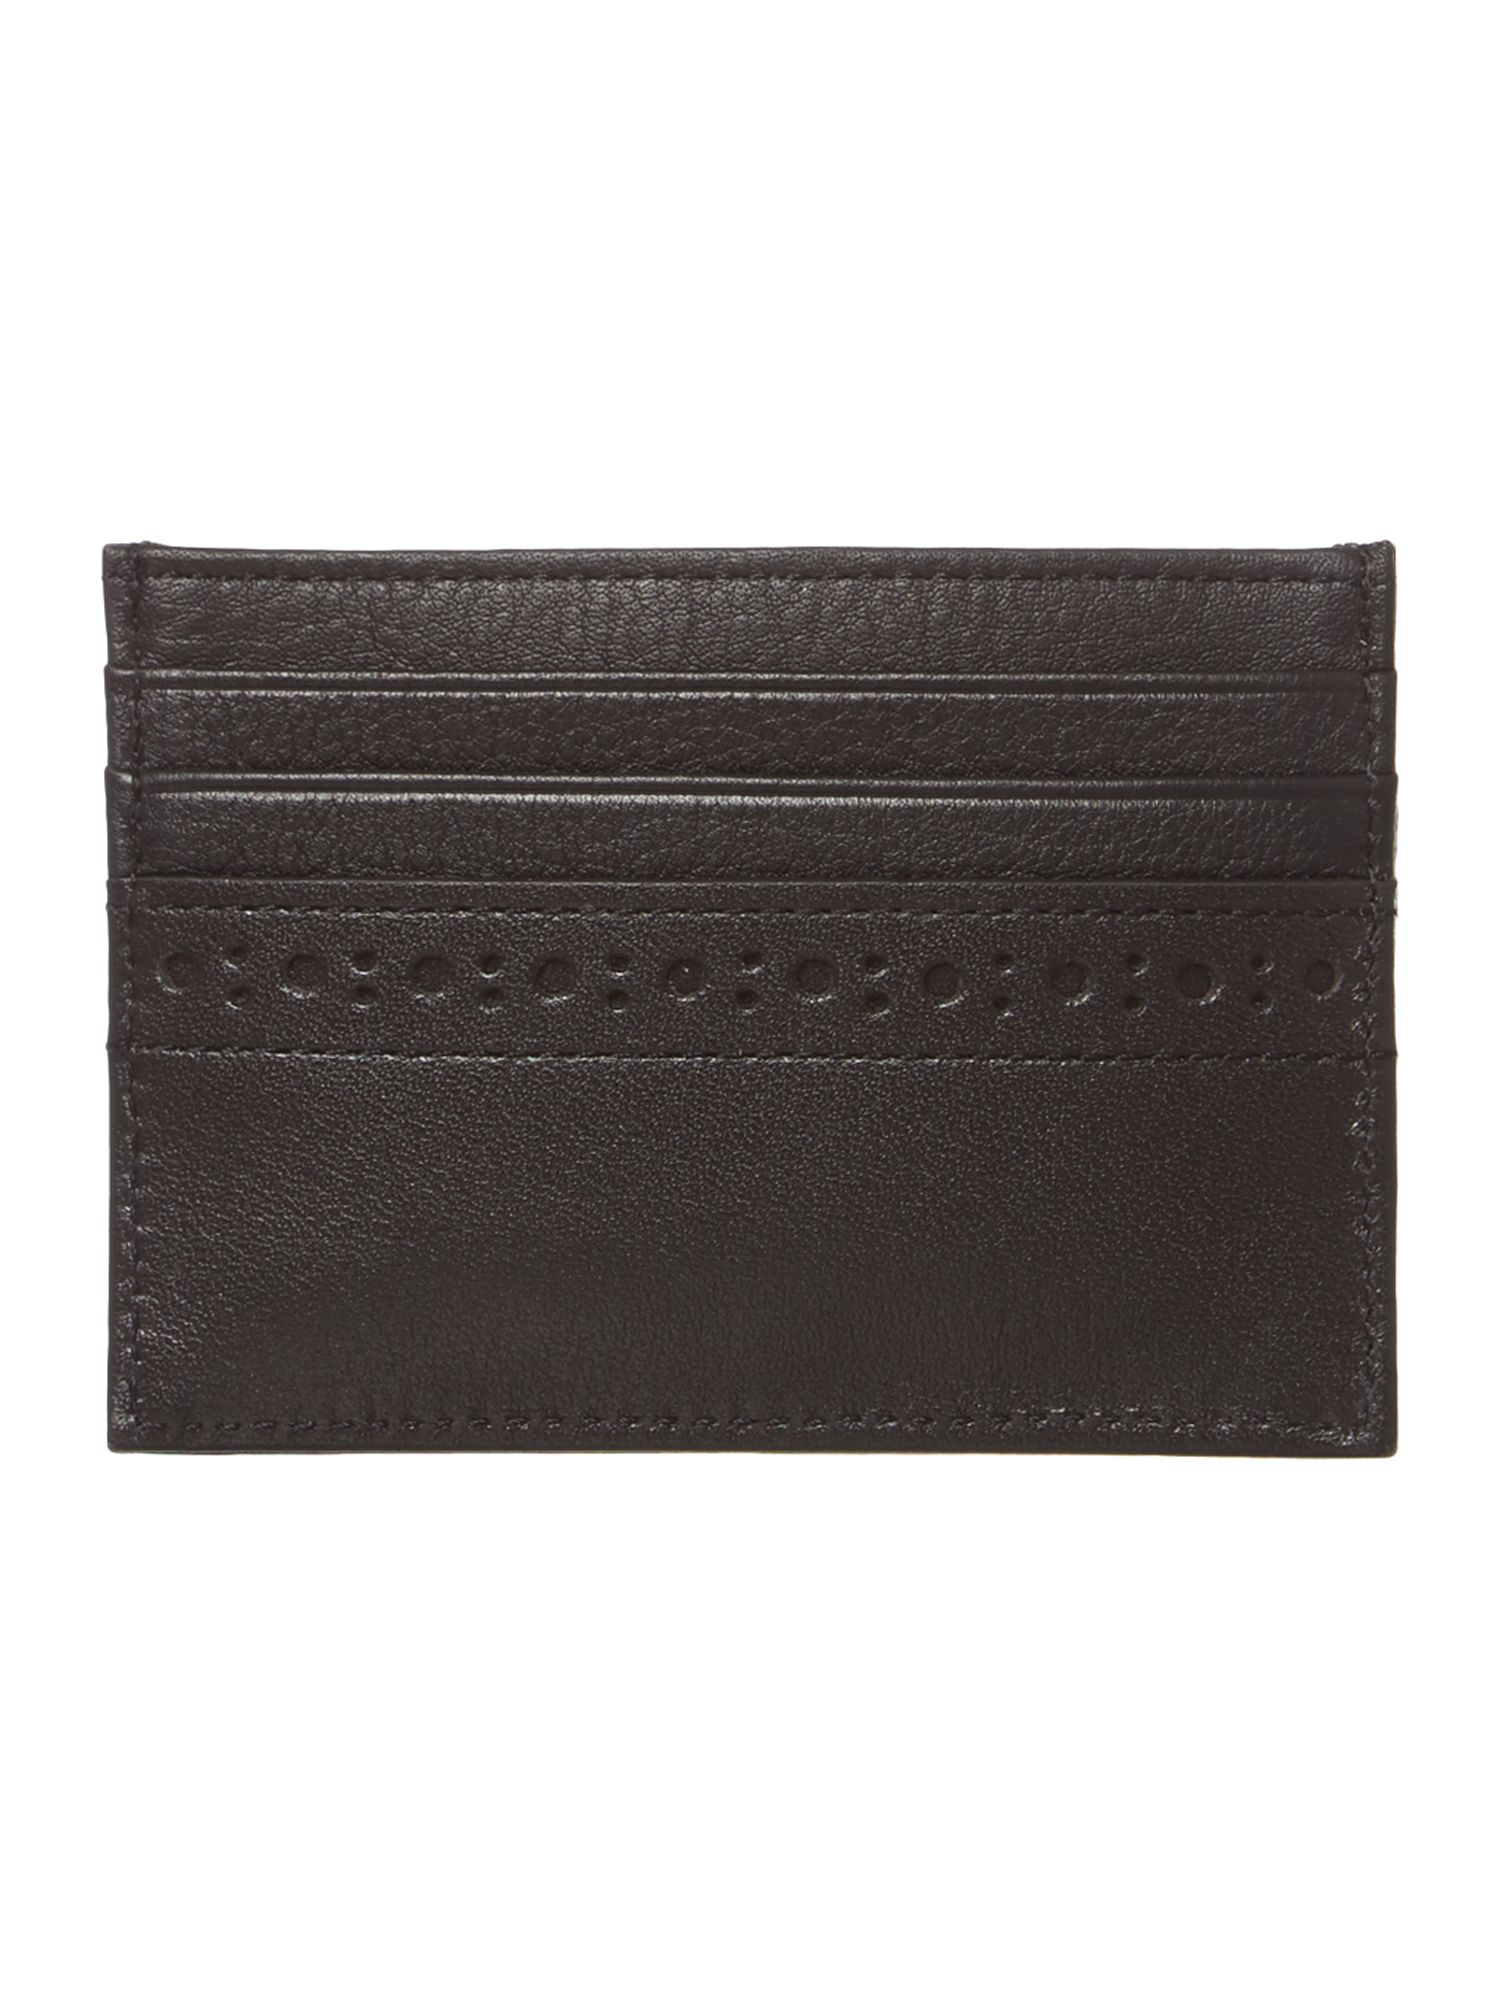 Leather brogue edge card holder